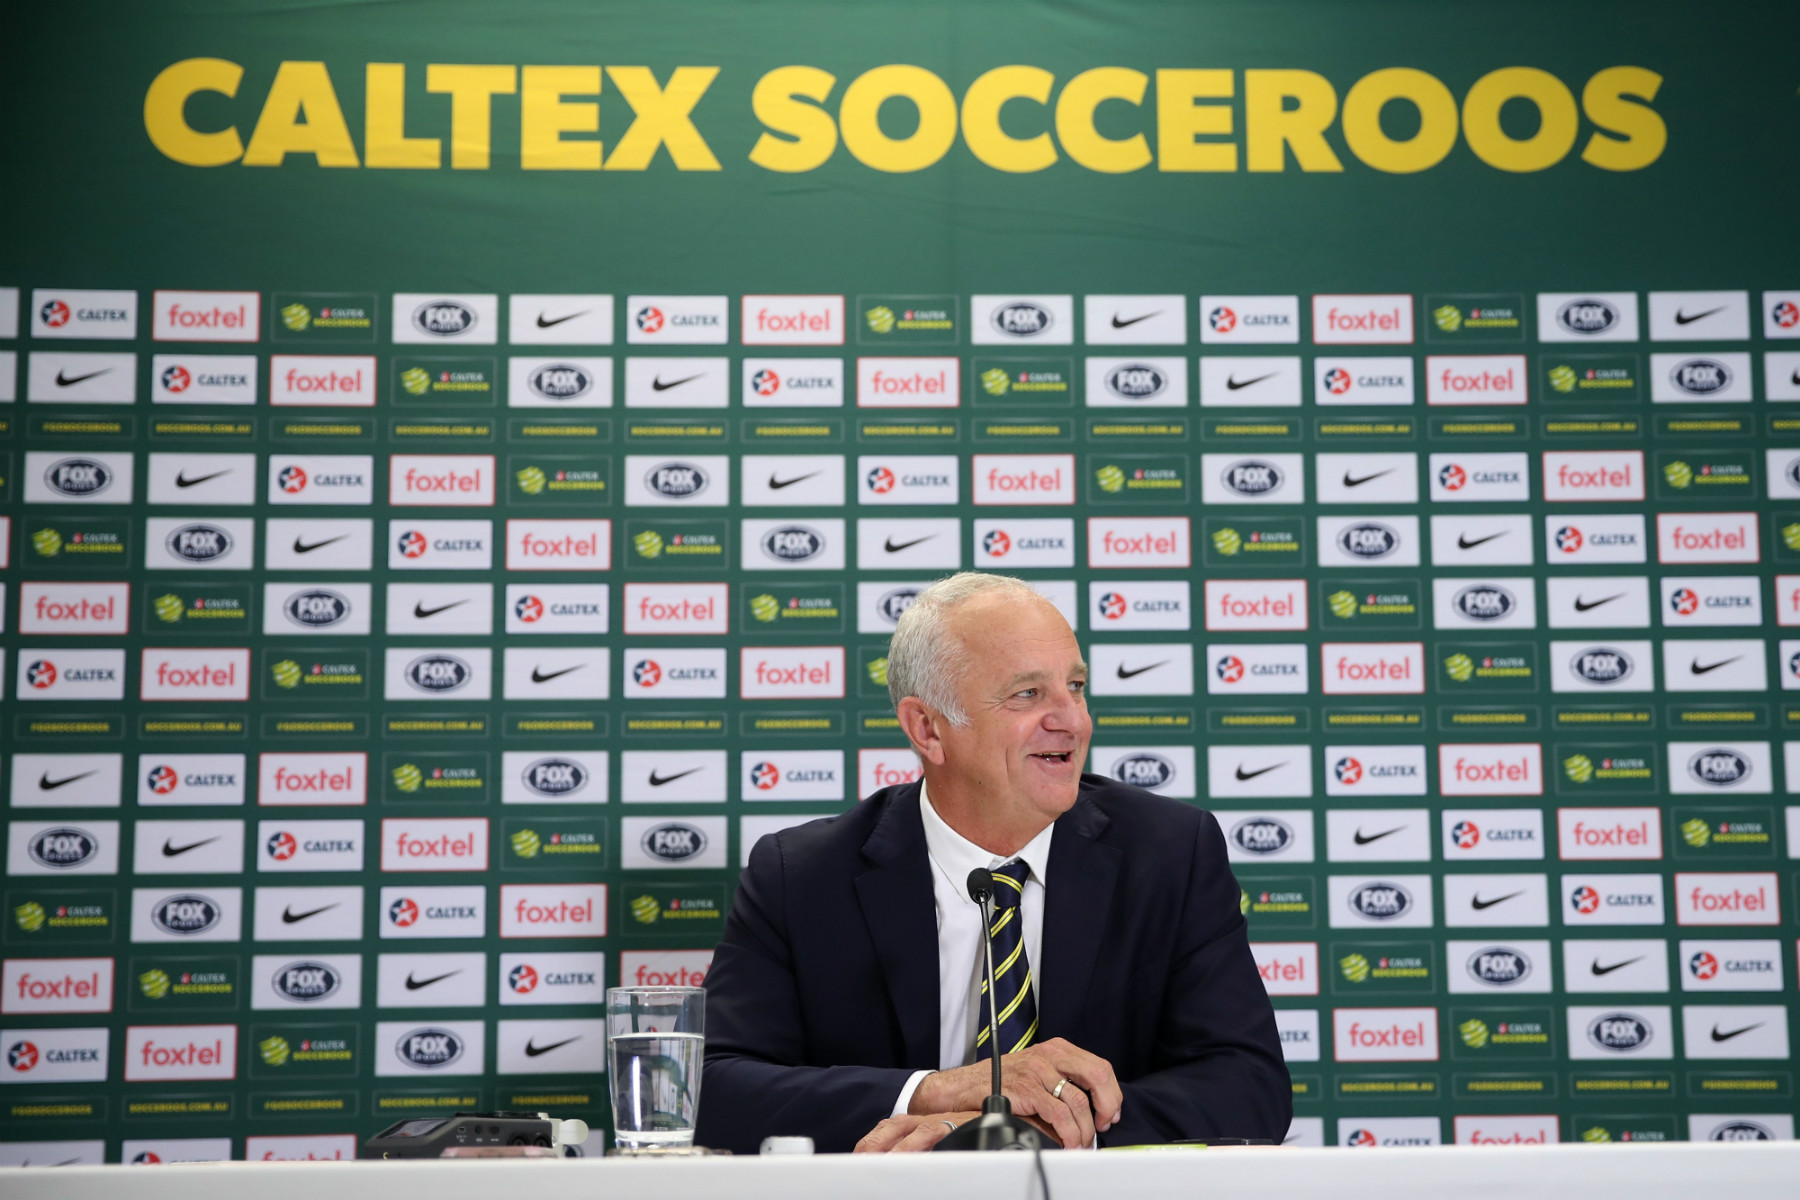 Graham Arnold sits in his press conference for the Caltex Socceroos